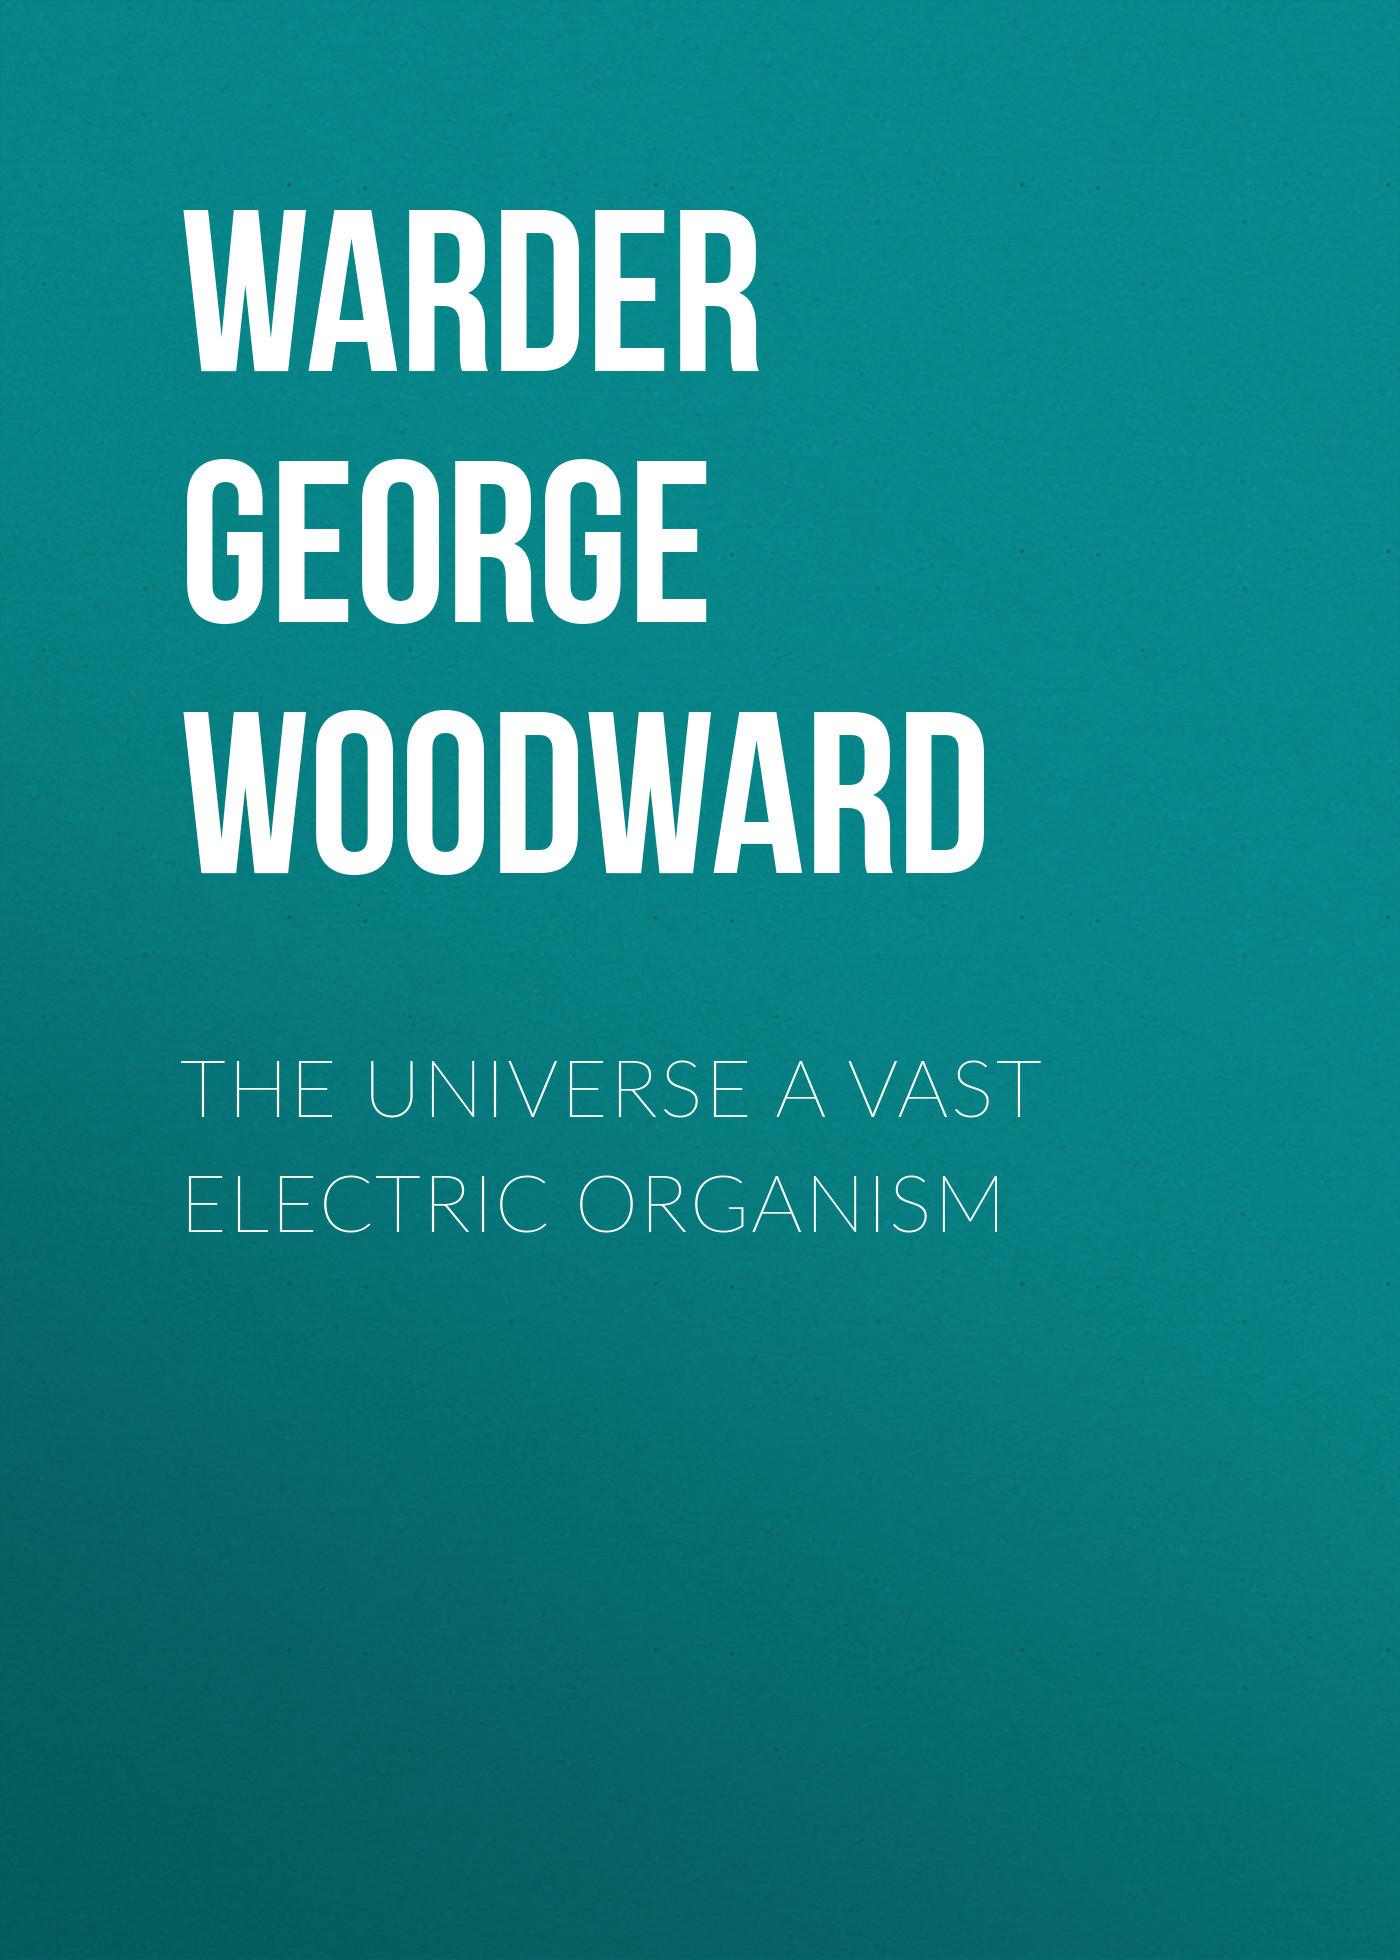 Warder George Woodward The Universe a Vast Electric Organism